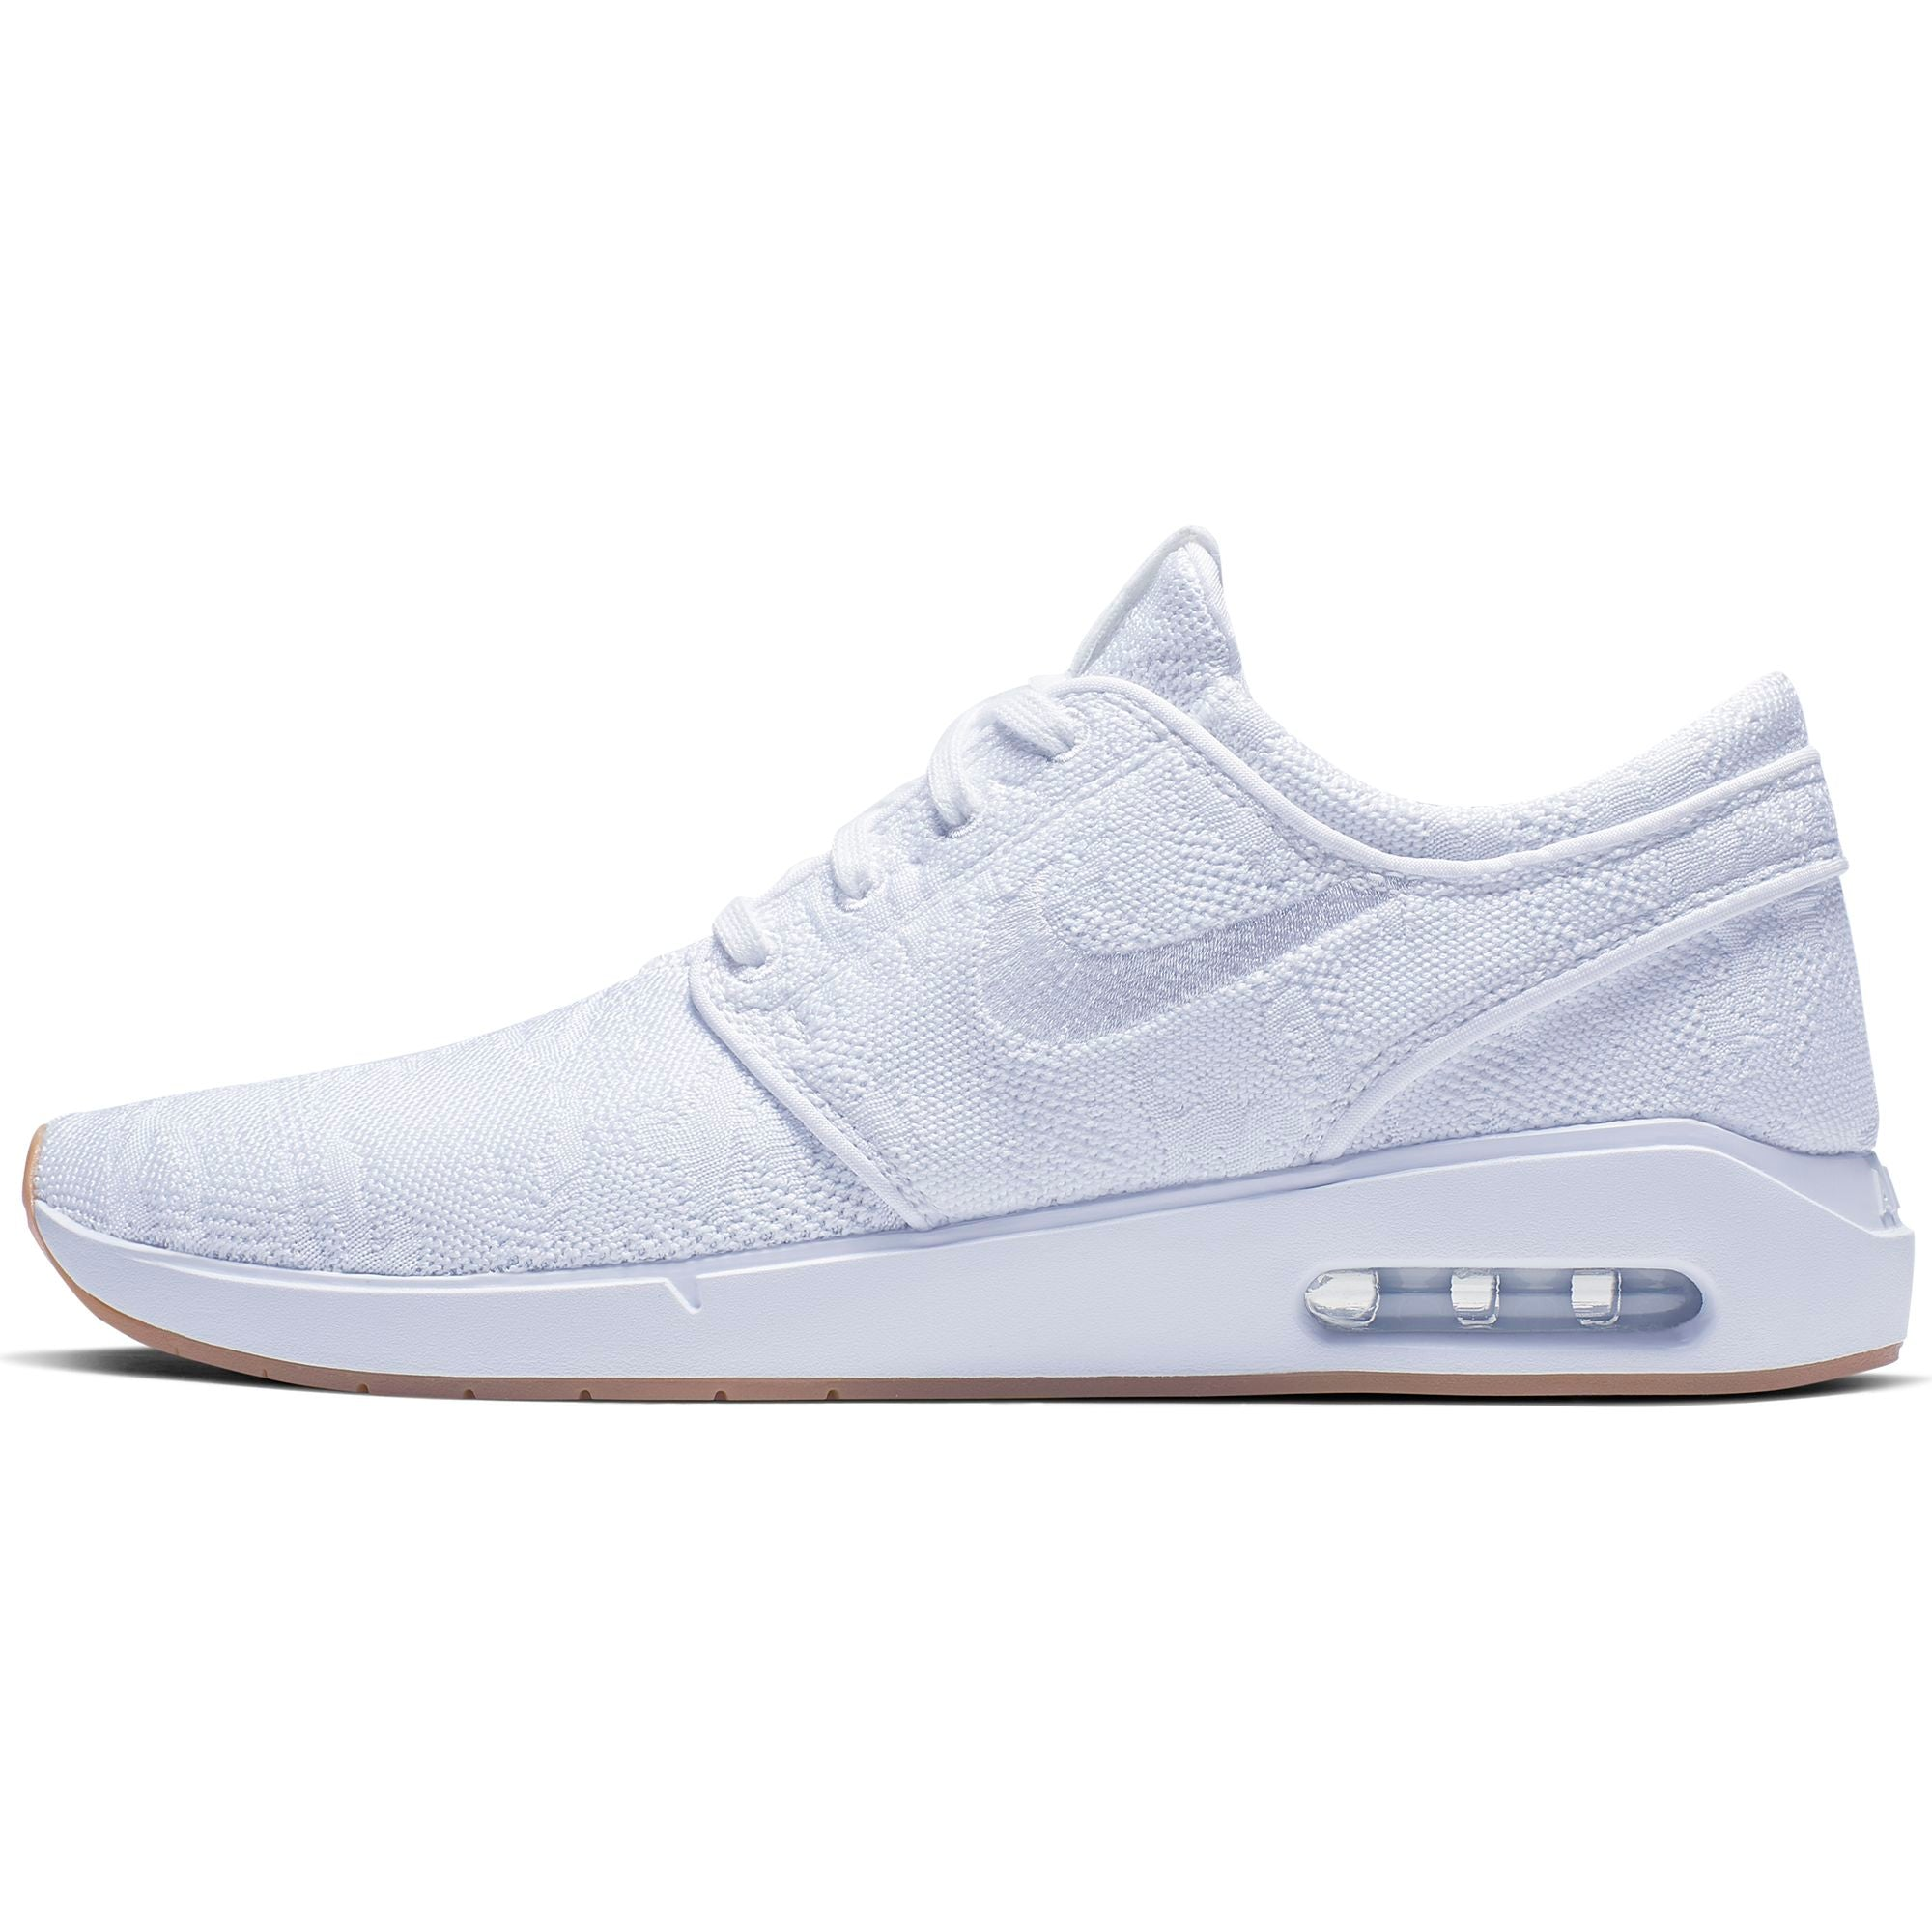 Air Max Janoski 2 White/ White - Gum Yellow